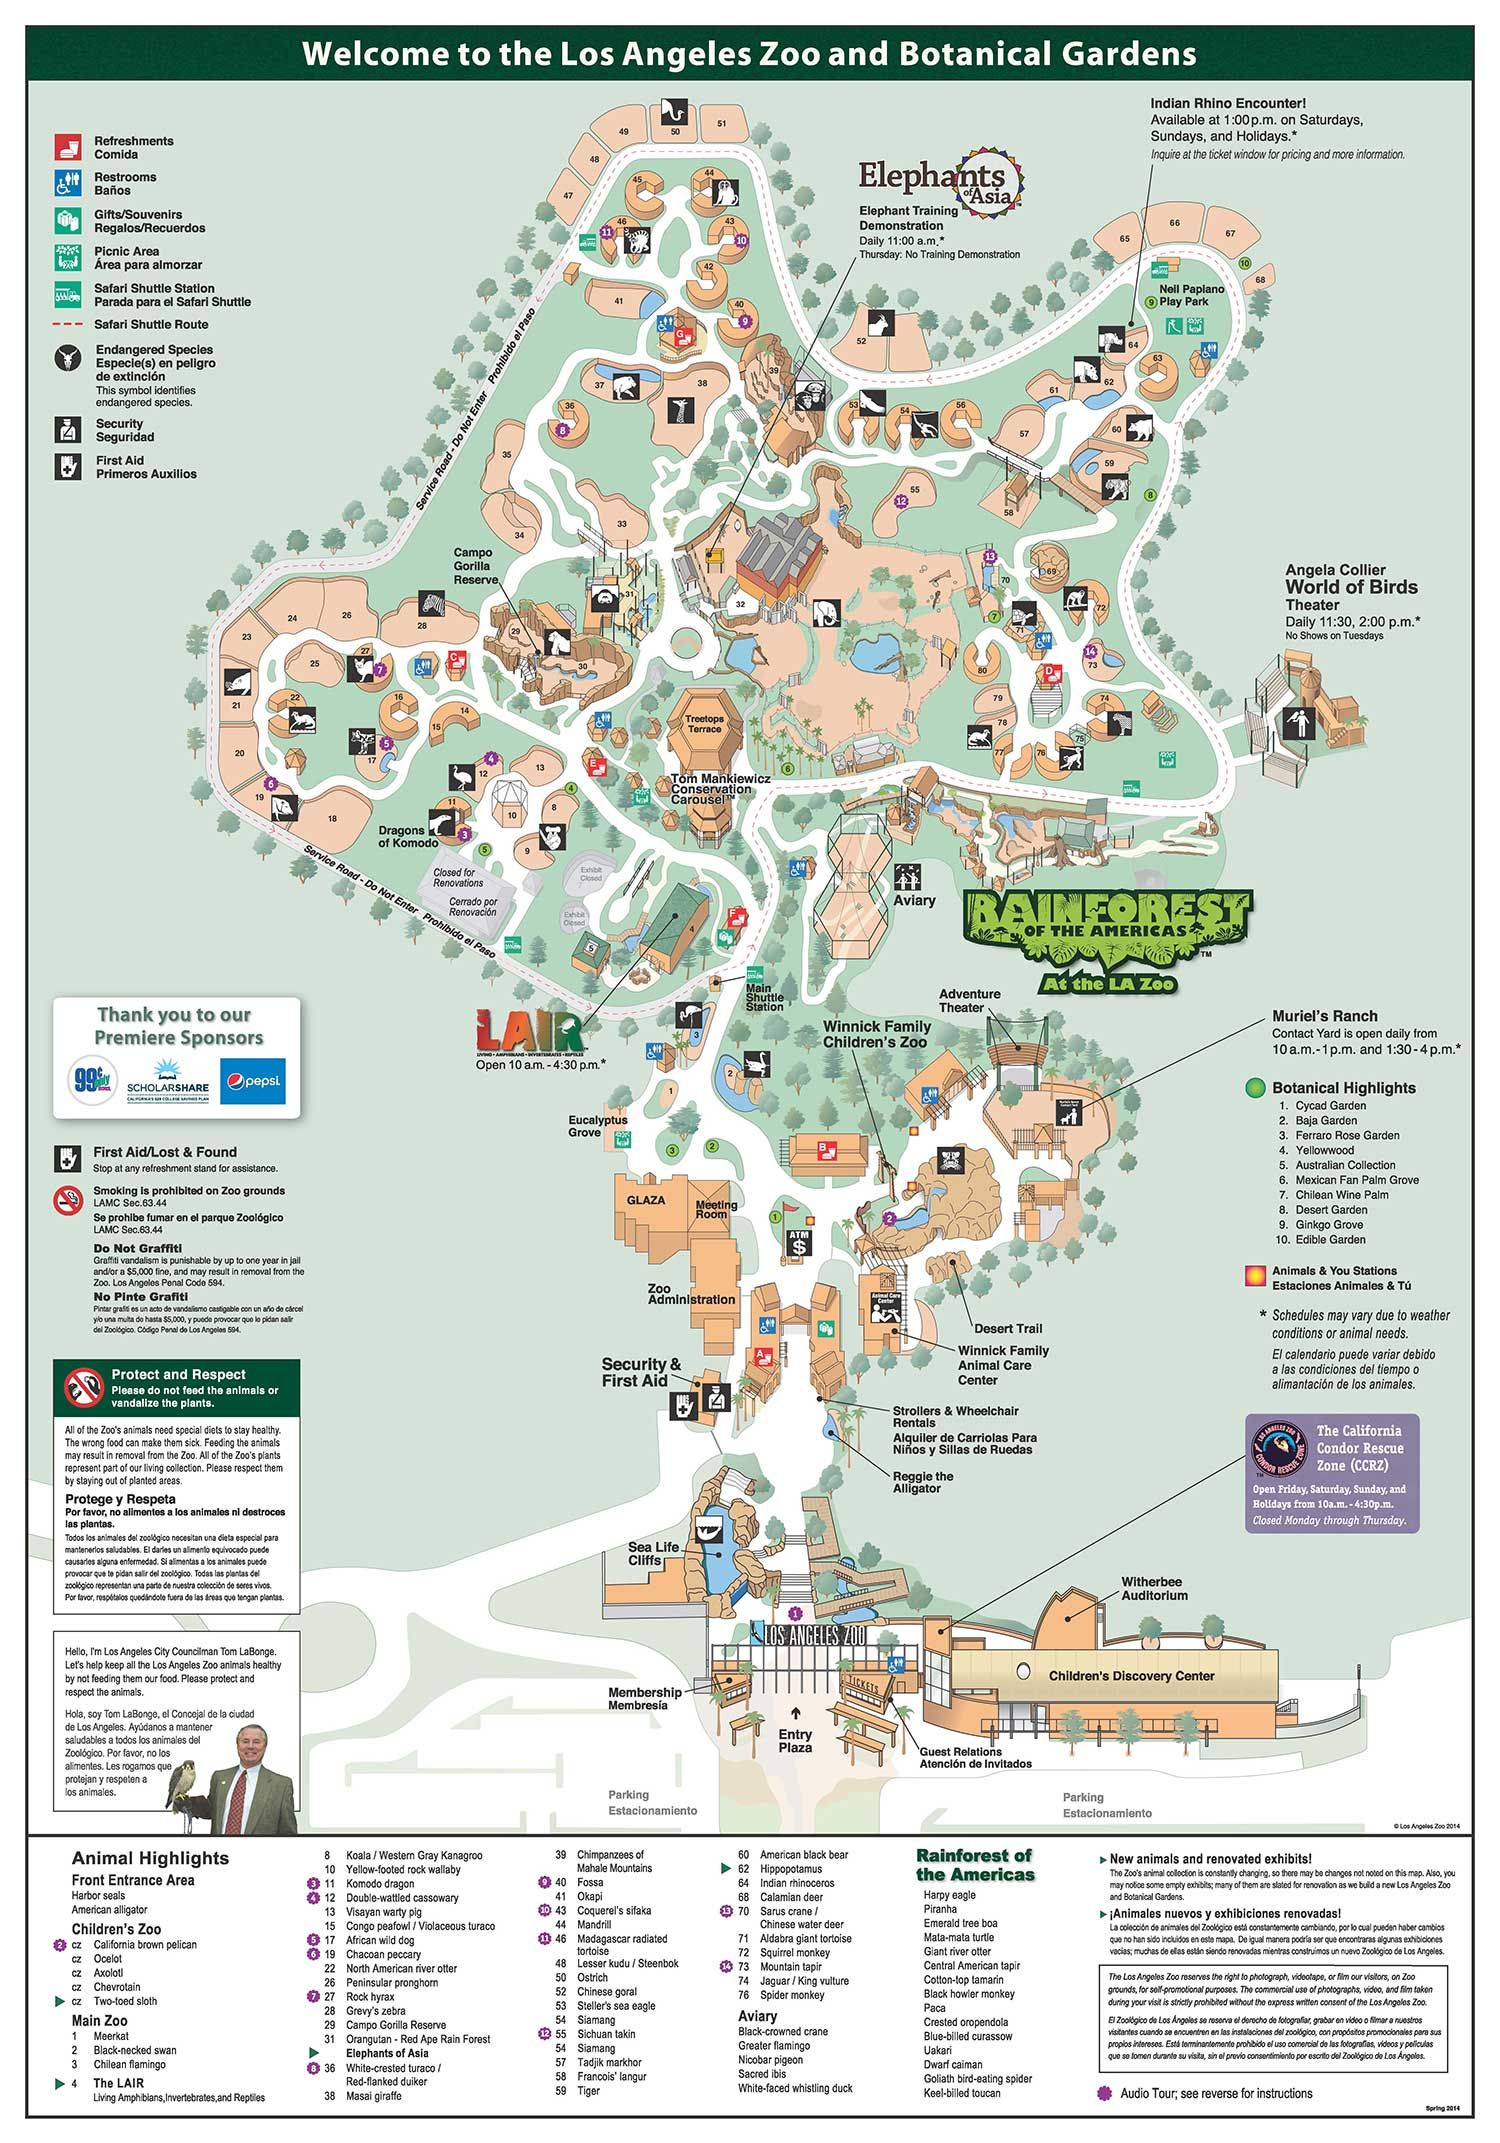 La Zoo Map Pin by Ann Coupons on La zoo coupons | Zoo map, Los angeles zoo